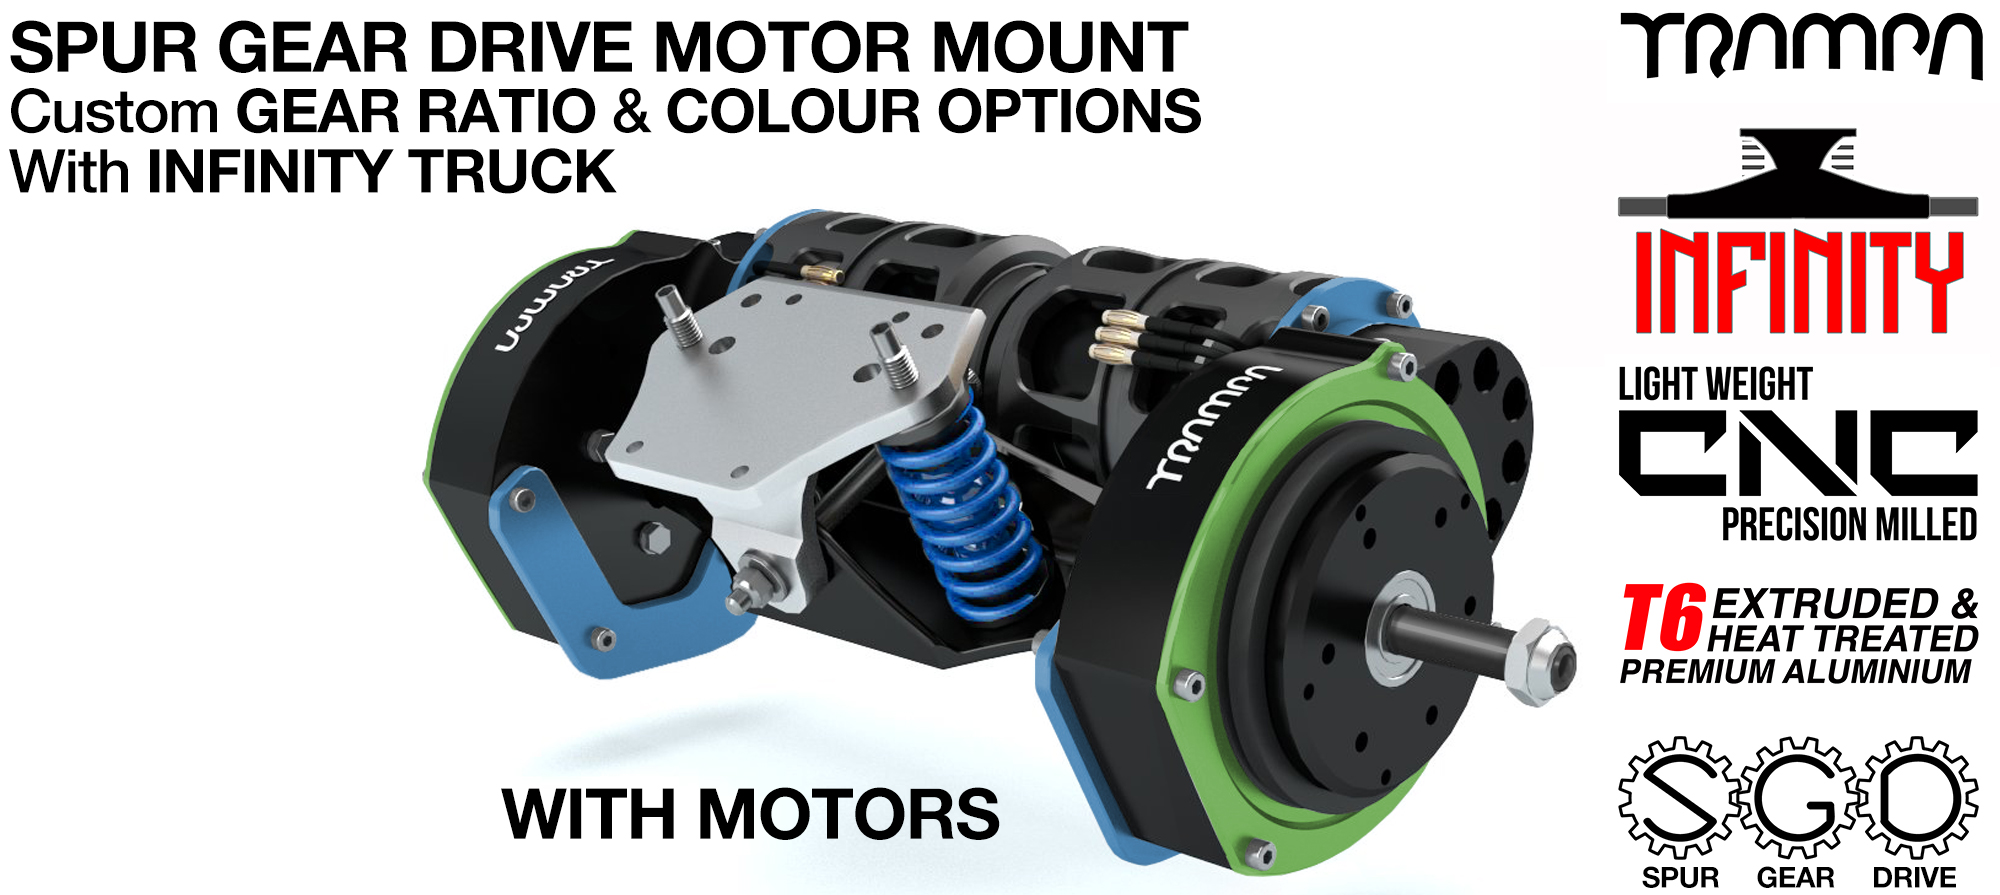 Mountainboard EXTERNAL Spur Gear Drive TWIN Motor Mounts with Motors & INFINITY Truck